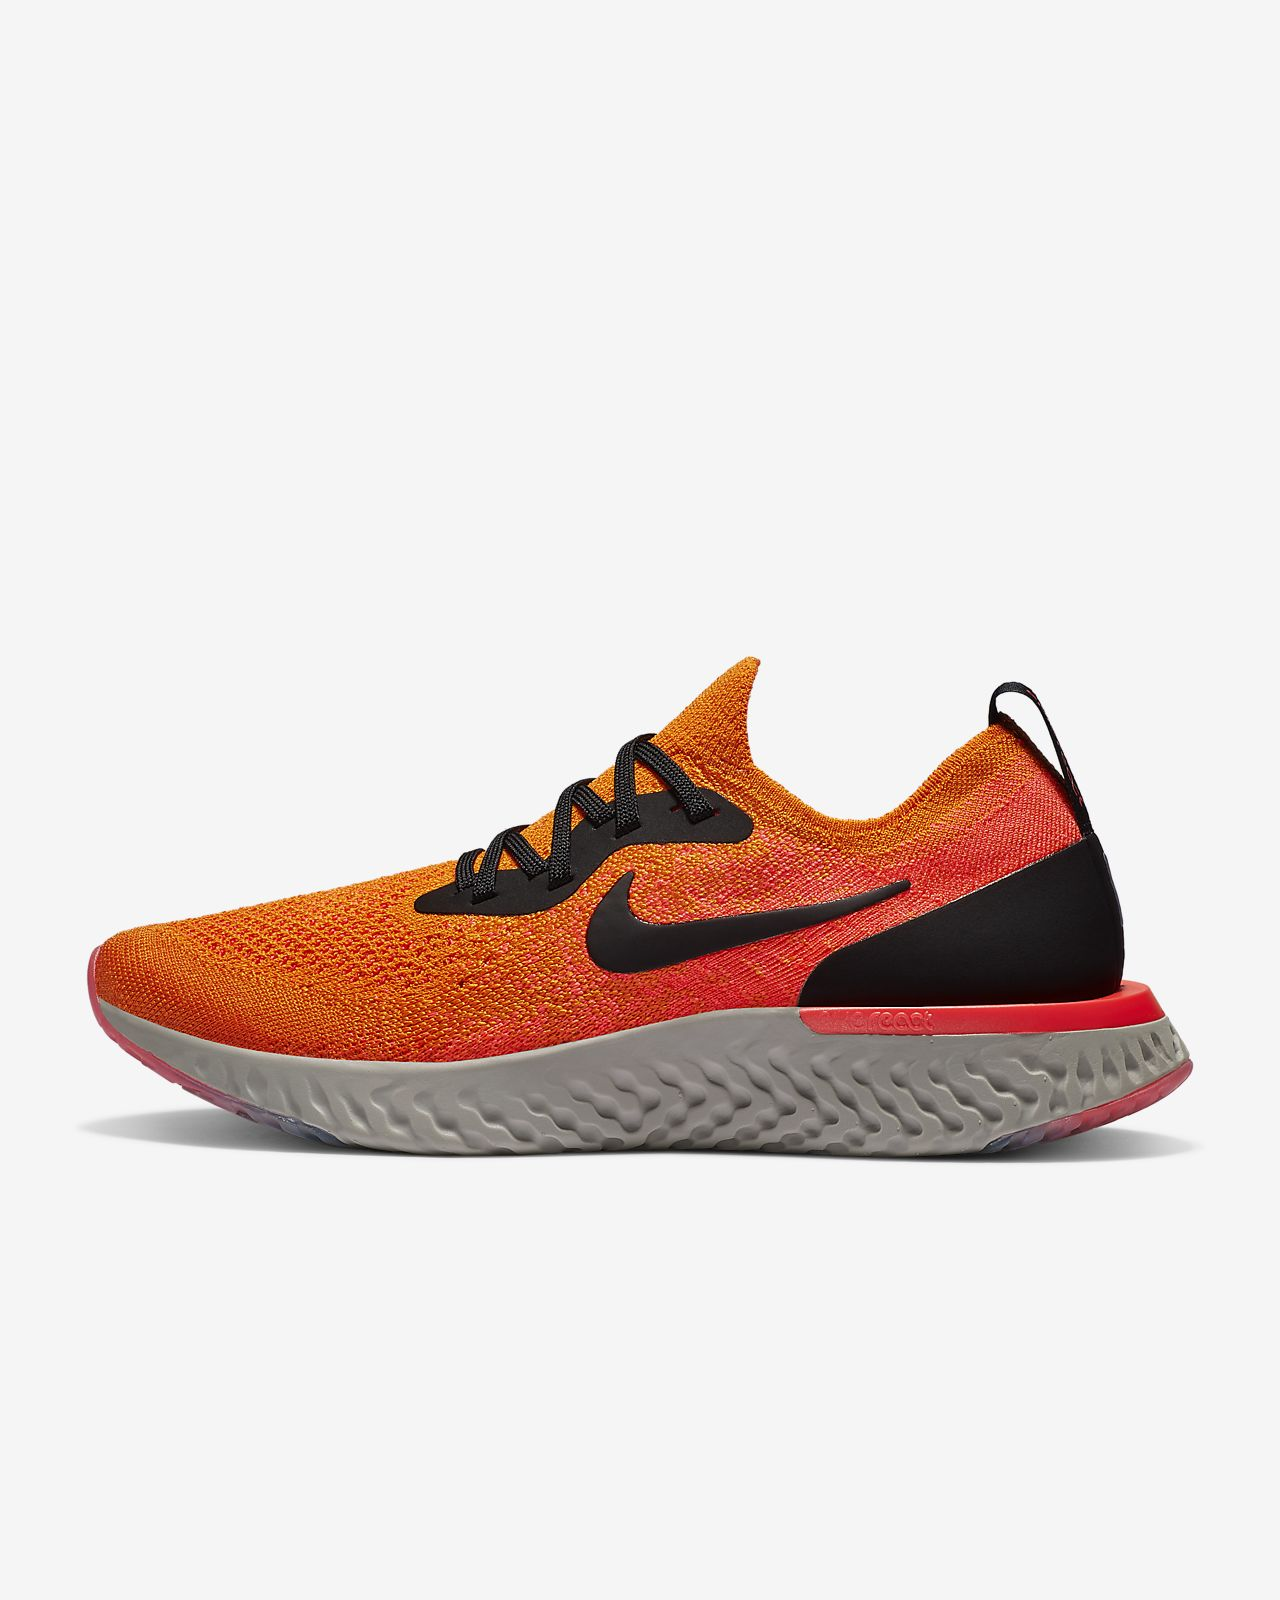 d54aa4bd12a1a ... authentic nike epic react flyknit zapatillas de running mujer 8d58a  f743b